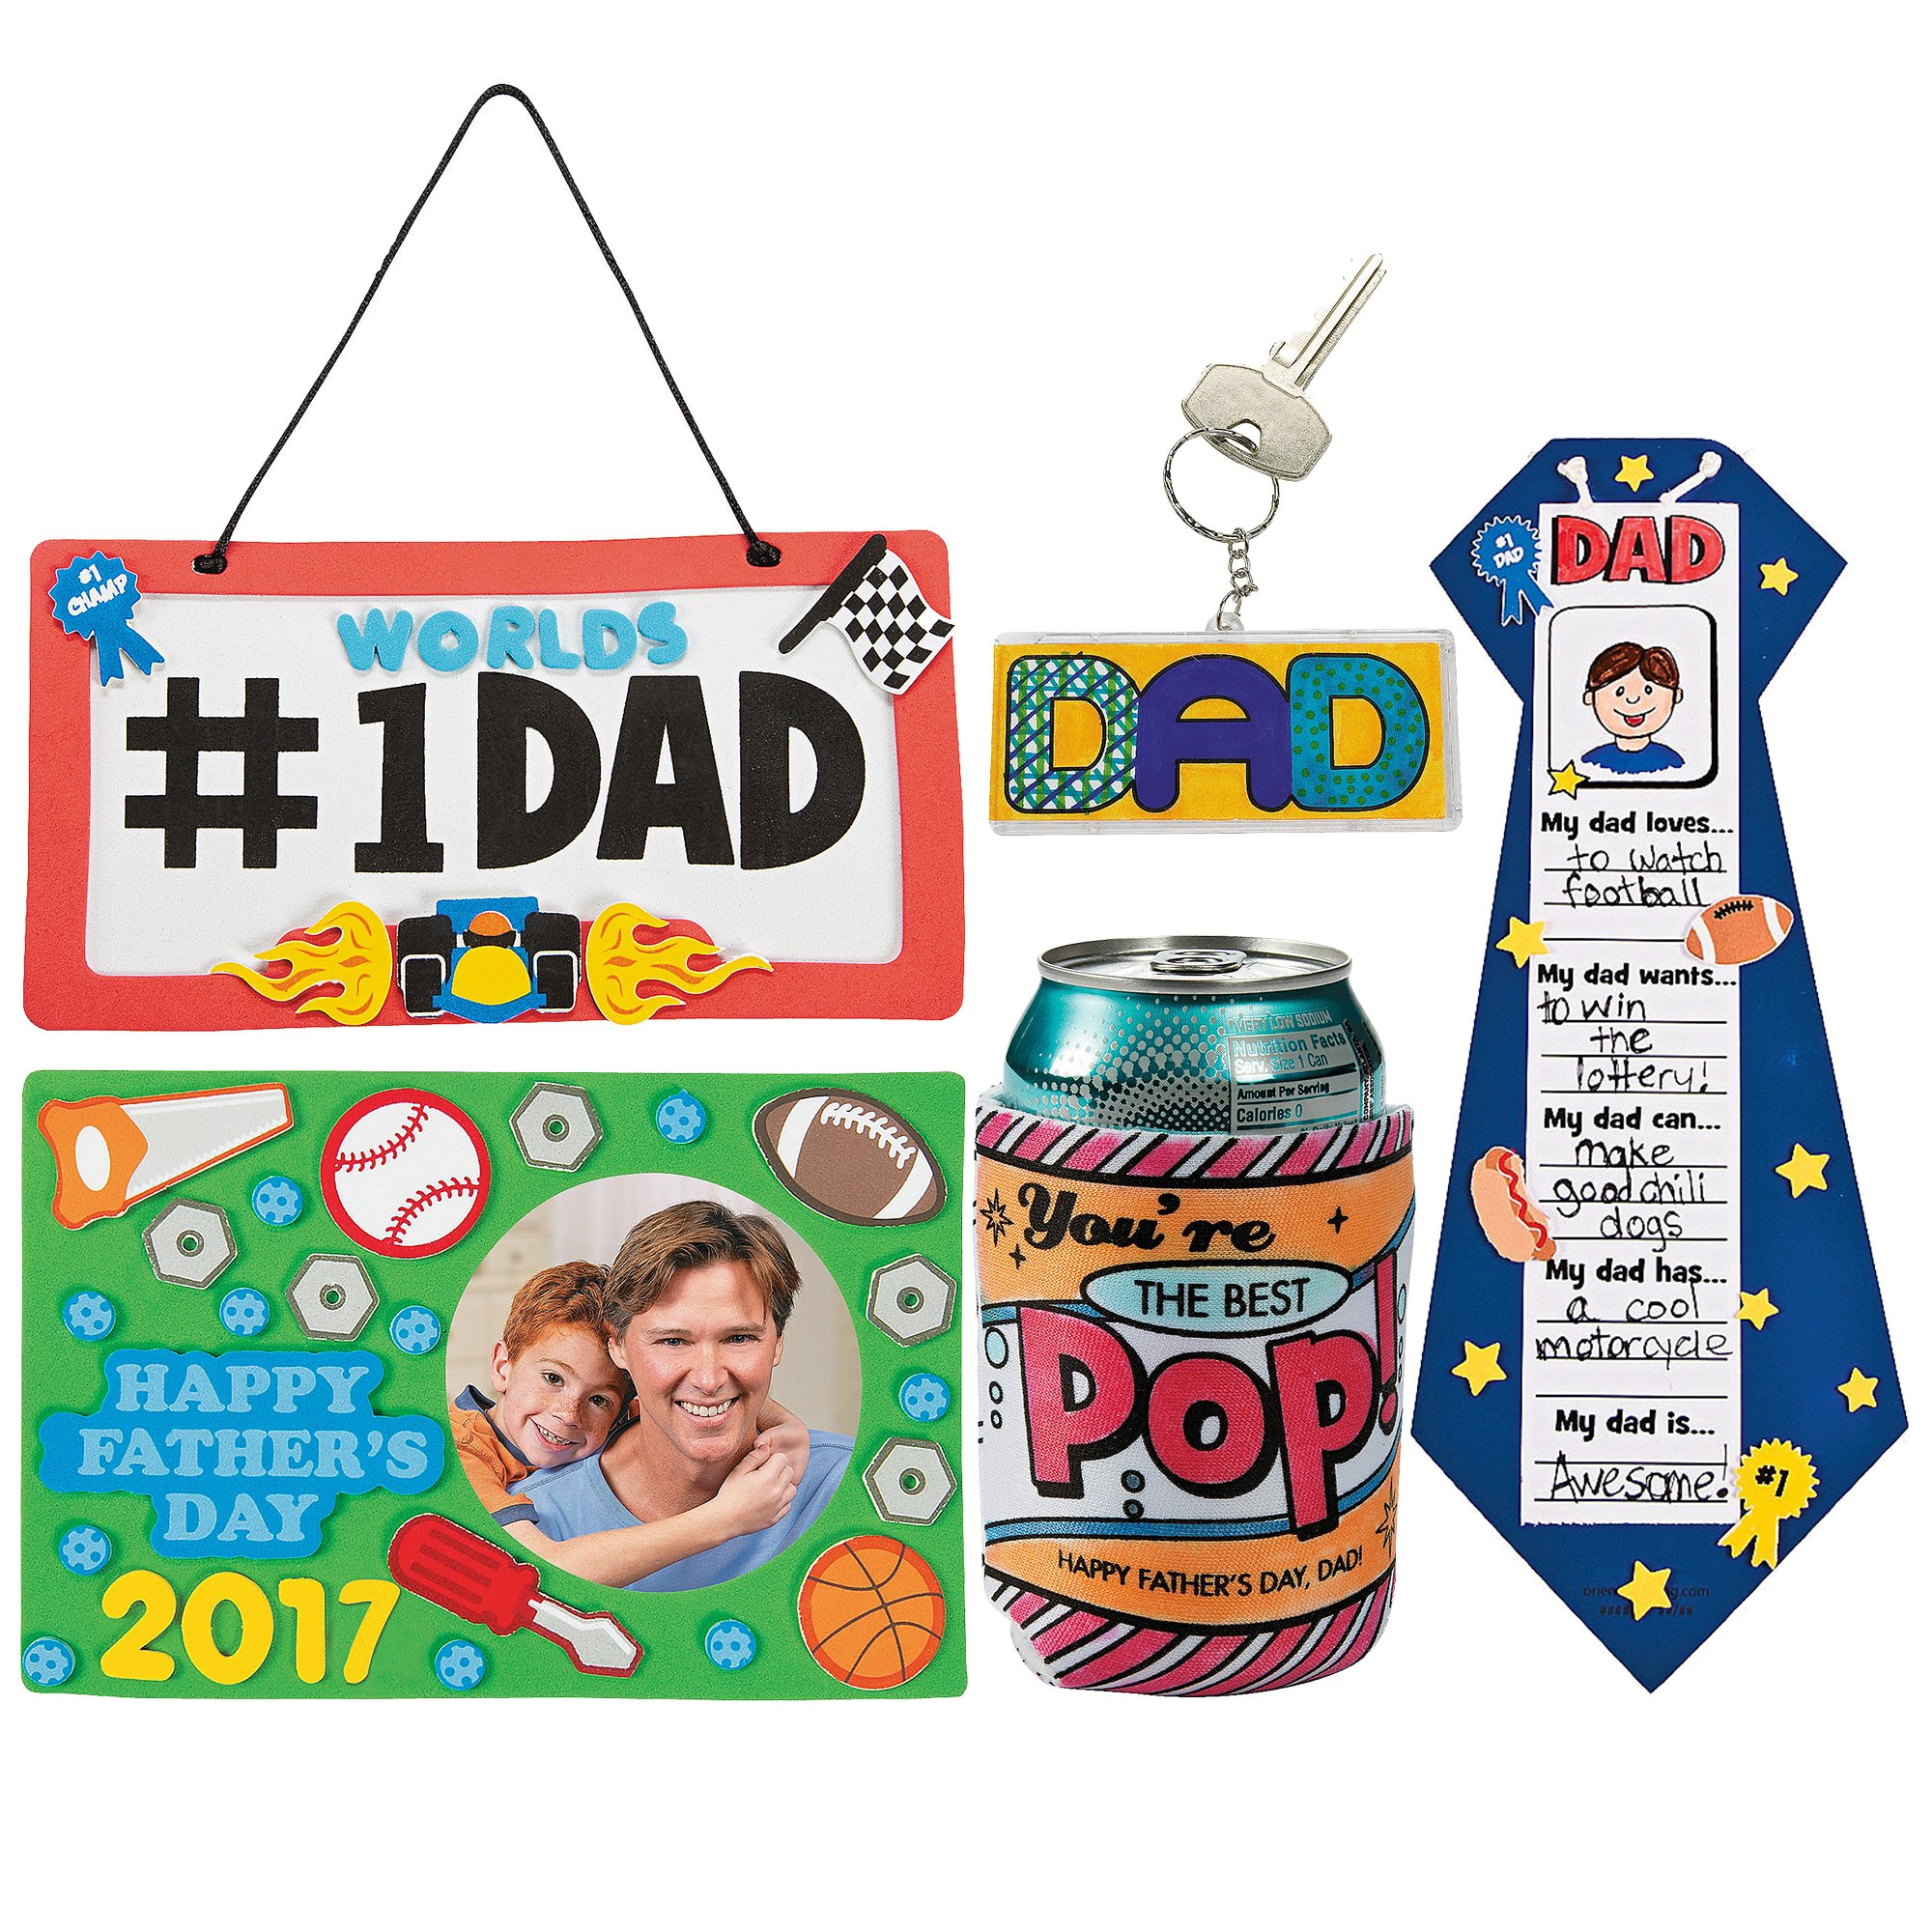 Fathers Day DIY Craft Kit; 1 Dated Picture Frame Magnet, 1 Dad License Plate Sign, 1 All About My Dad Tie Craft, 1 ''Best Pop'' Color Your Own Can Coolers, Beaded #1 Dad Tool Key Chain Kit | Boy Girls